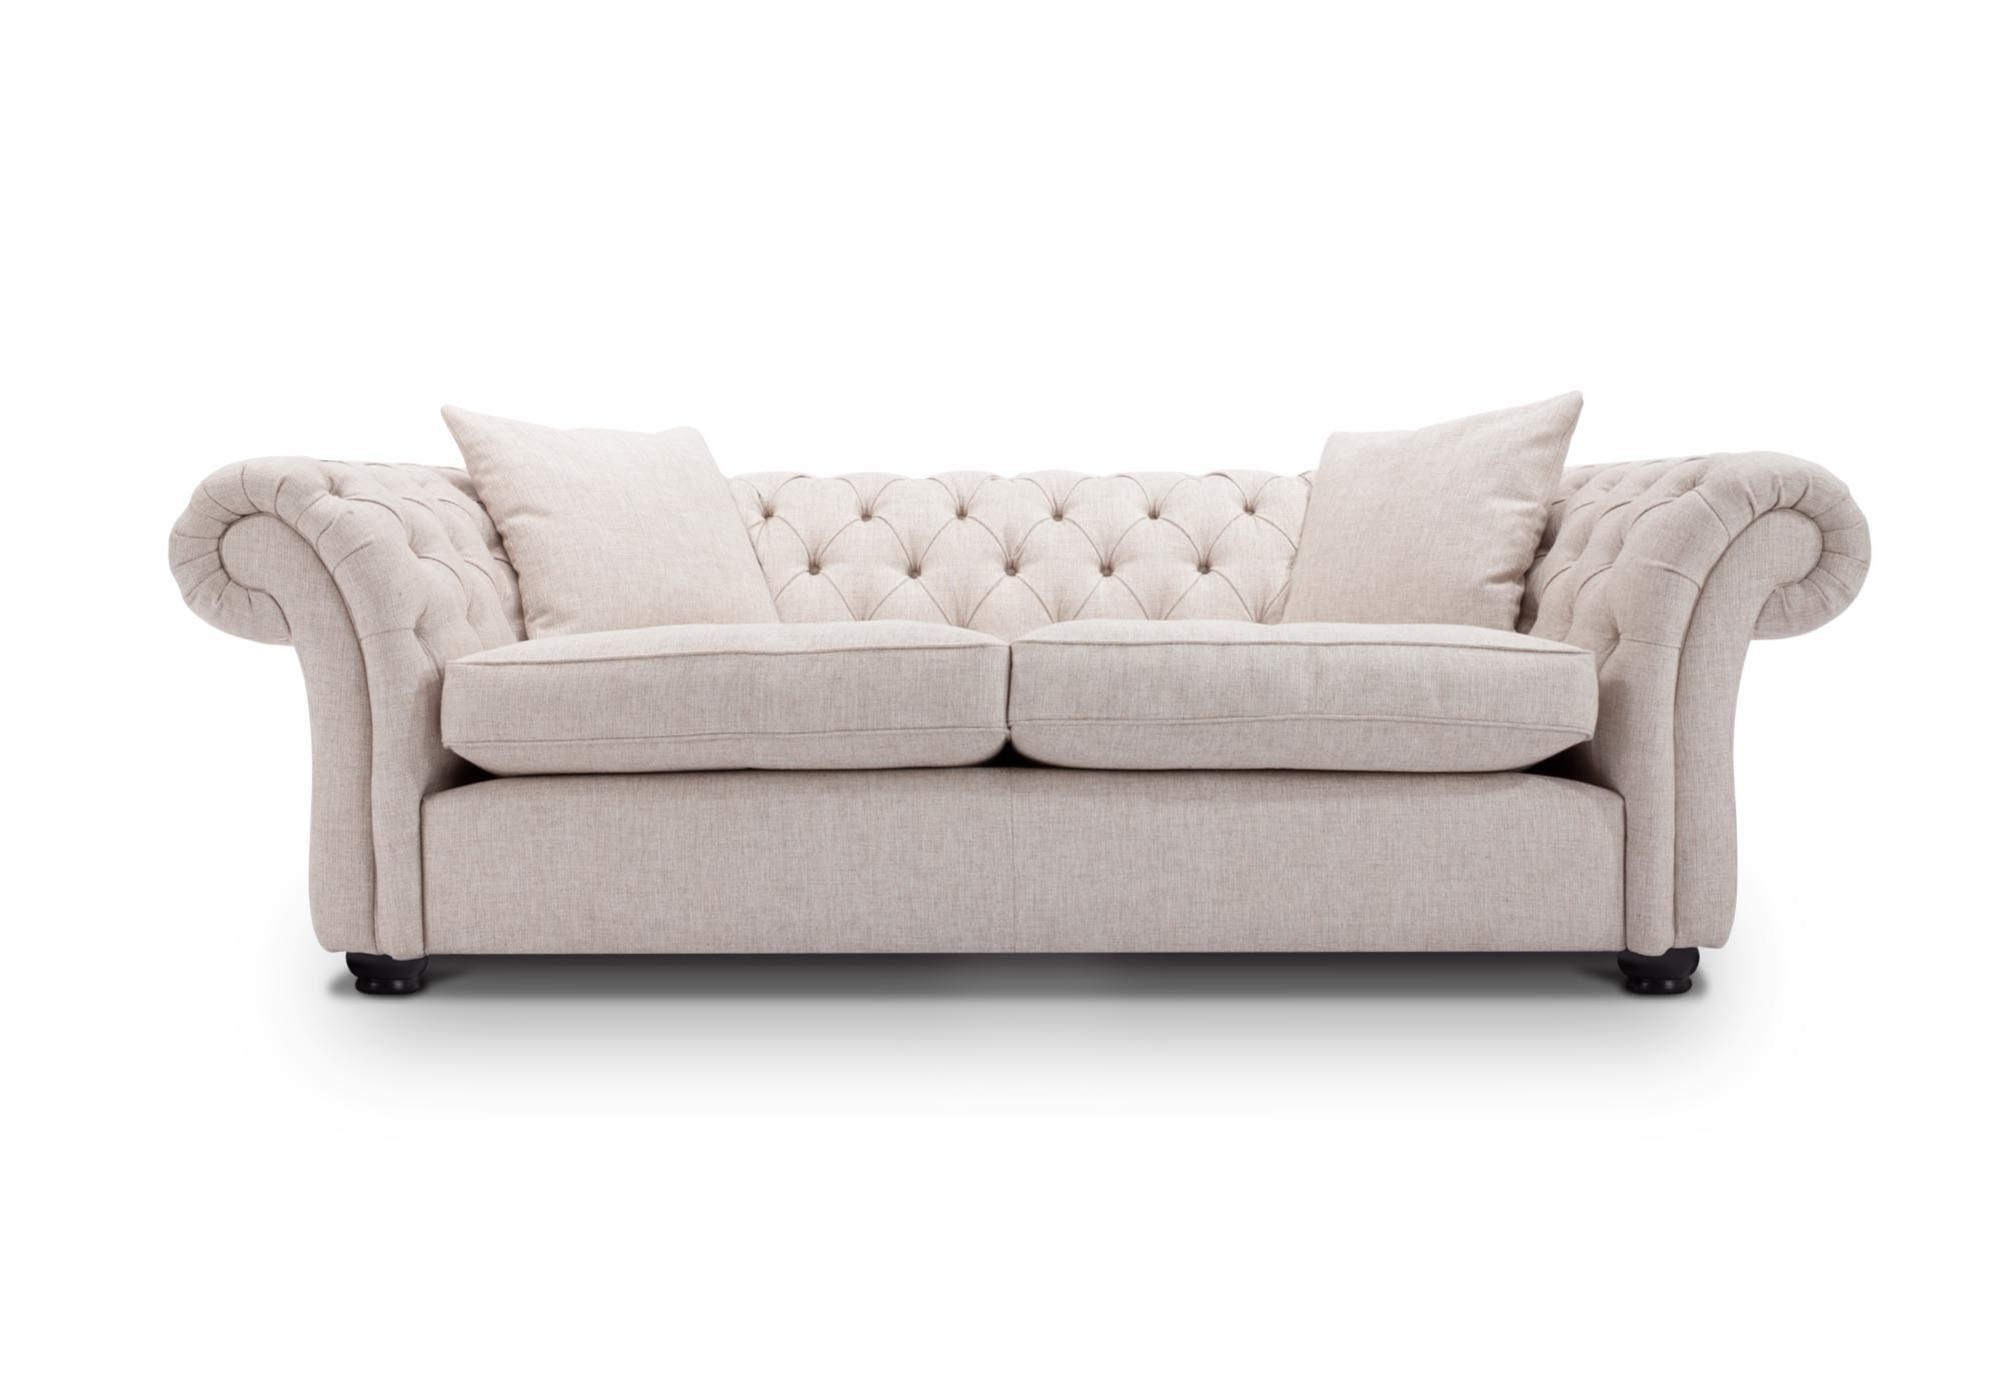 Sofas : Amazing Blue Tufted Sofa White Chesterfield Sofa Small Throughout White Fabric Sofas (Image 16 of 20)